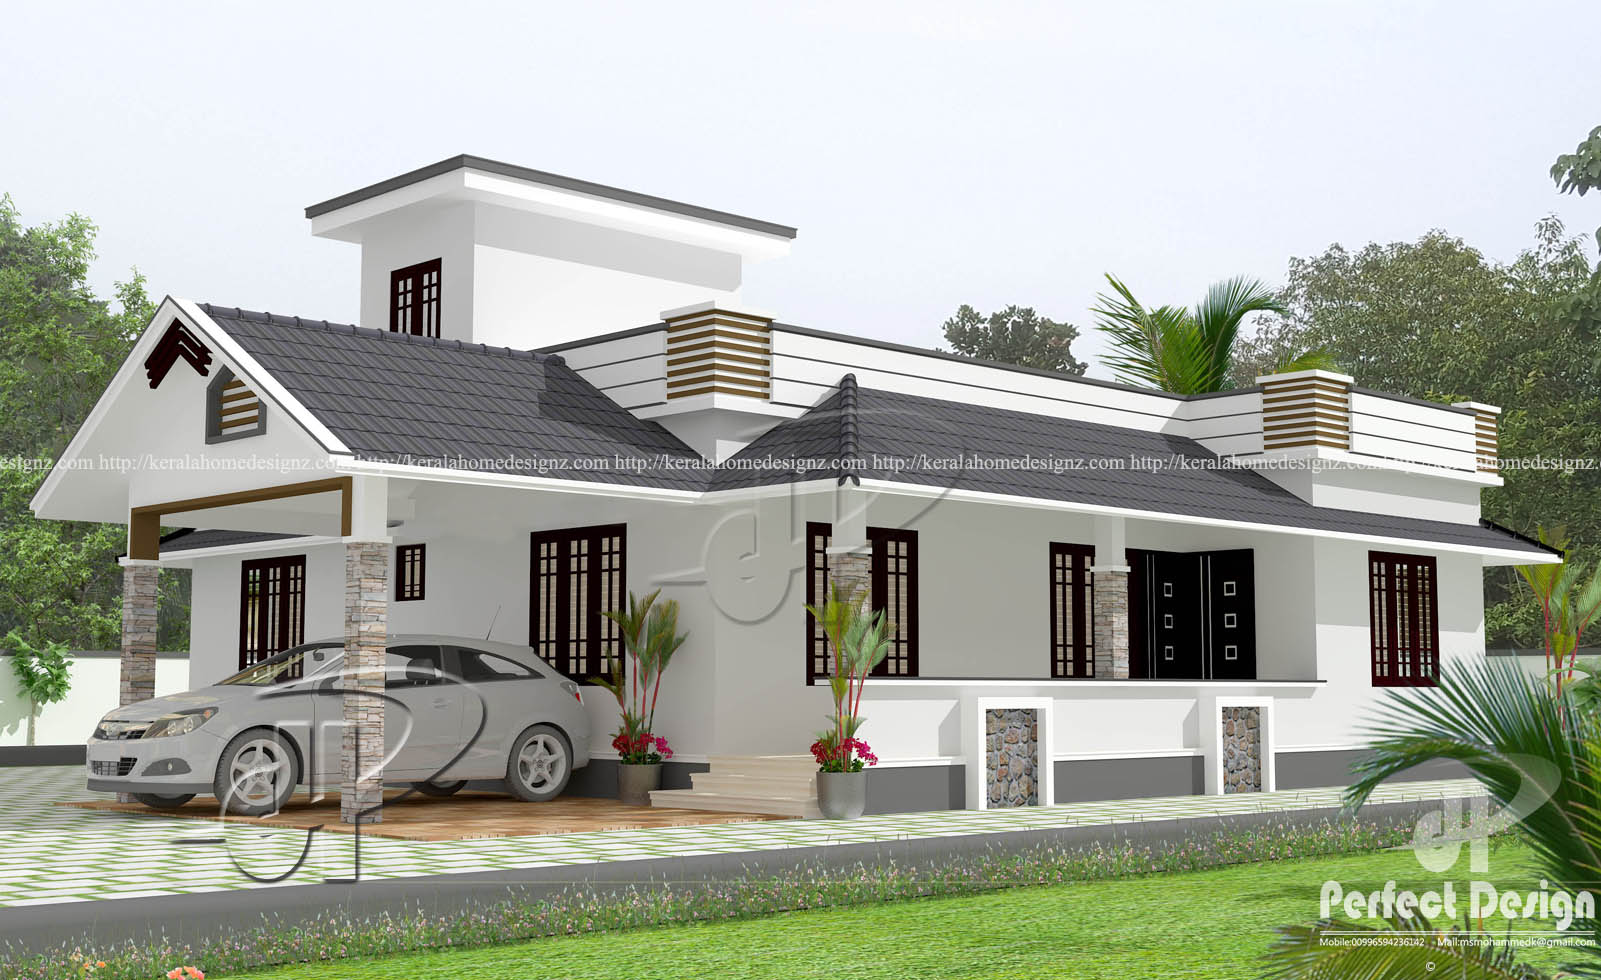 Perfect Kerala Home Design Image beautiful home designes regarding home veeduonline Ft Kerala Home Designs